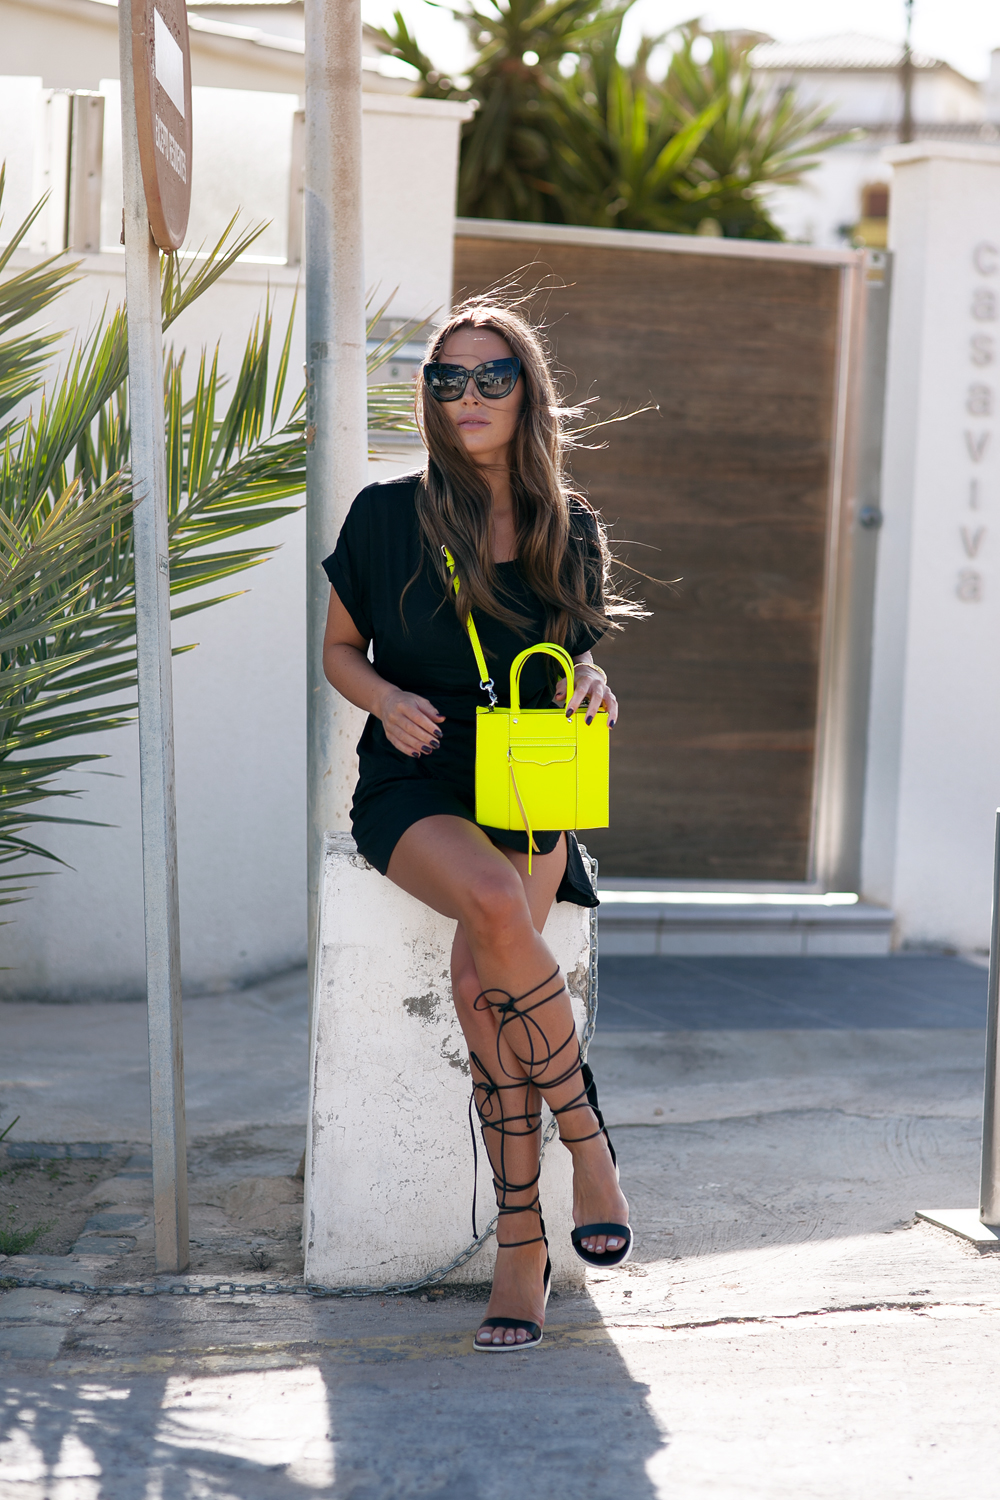 Johanna Olsson is wearing black lace up Tibi sandals with a Lindex dress and a neon Rebecca Minkoff sidebag